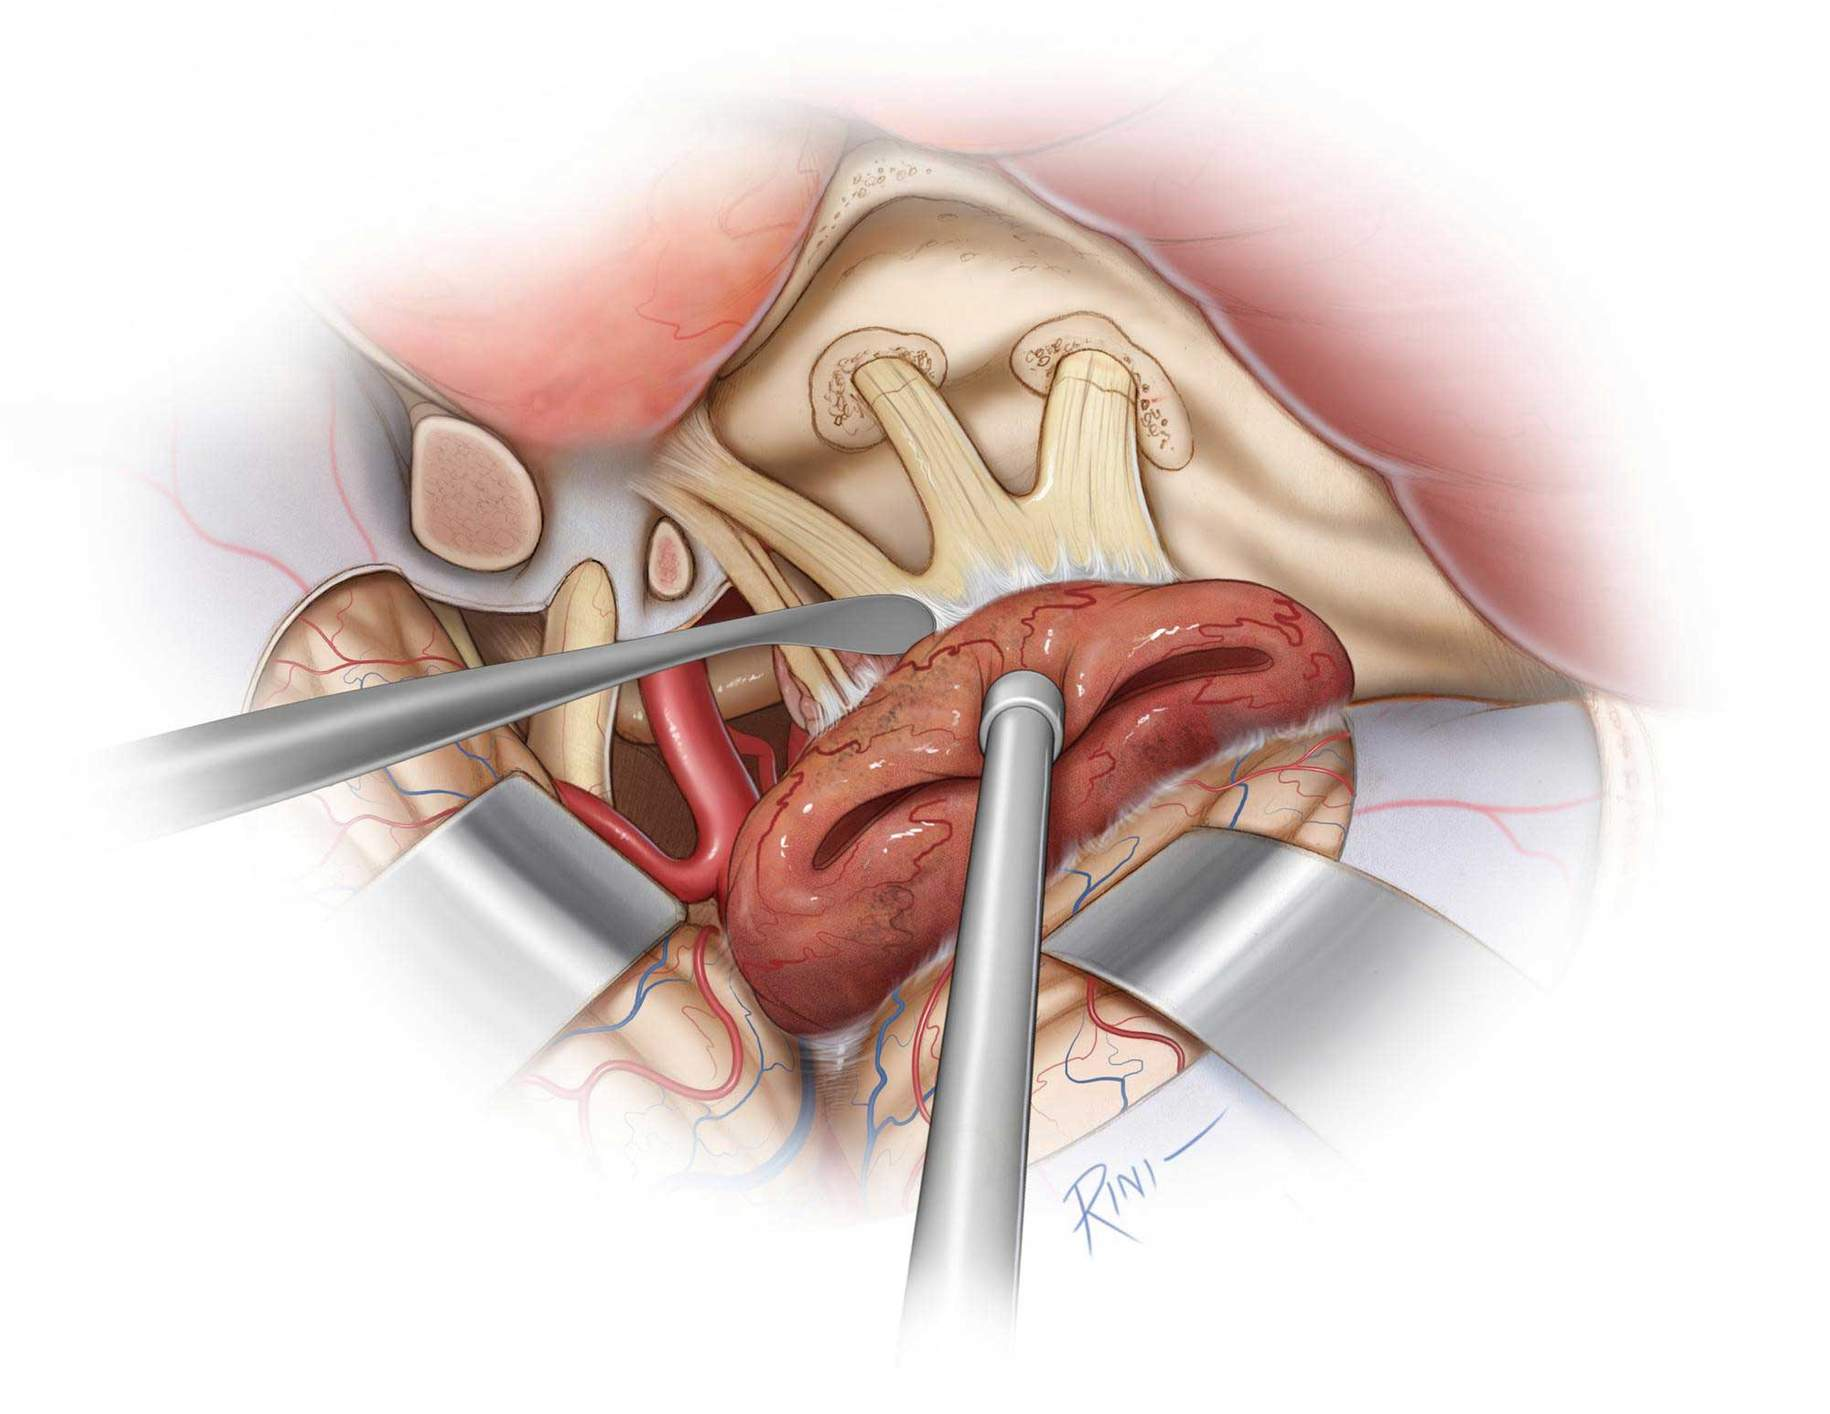 Figure 11: The tumor is carefully dissected from the Gasserian ganglion. Any portion of the tumor infiltrating the trigeminal foramina is dissected if safely possible. The bony openings around the trigeminal nerve divisions are expanded, if necessary.